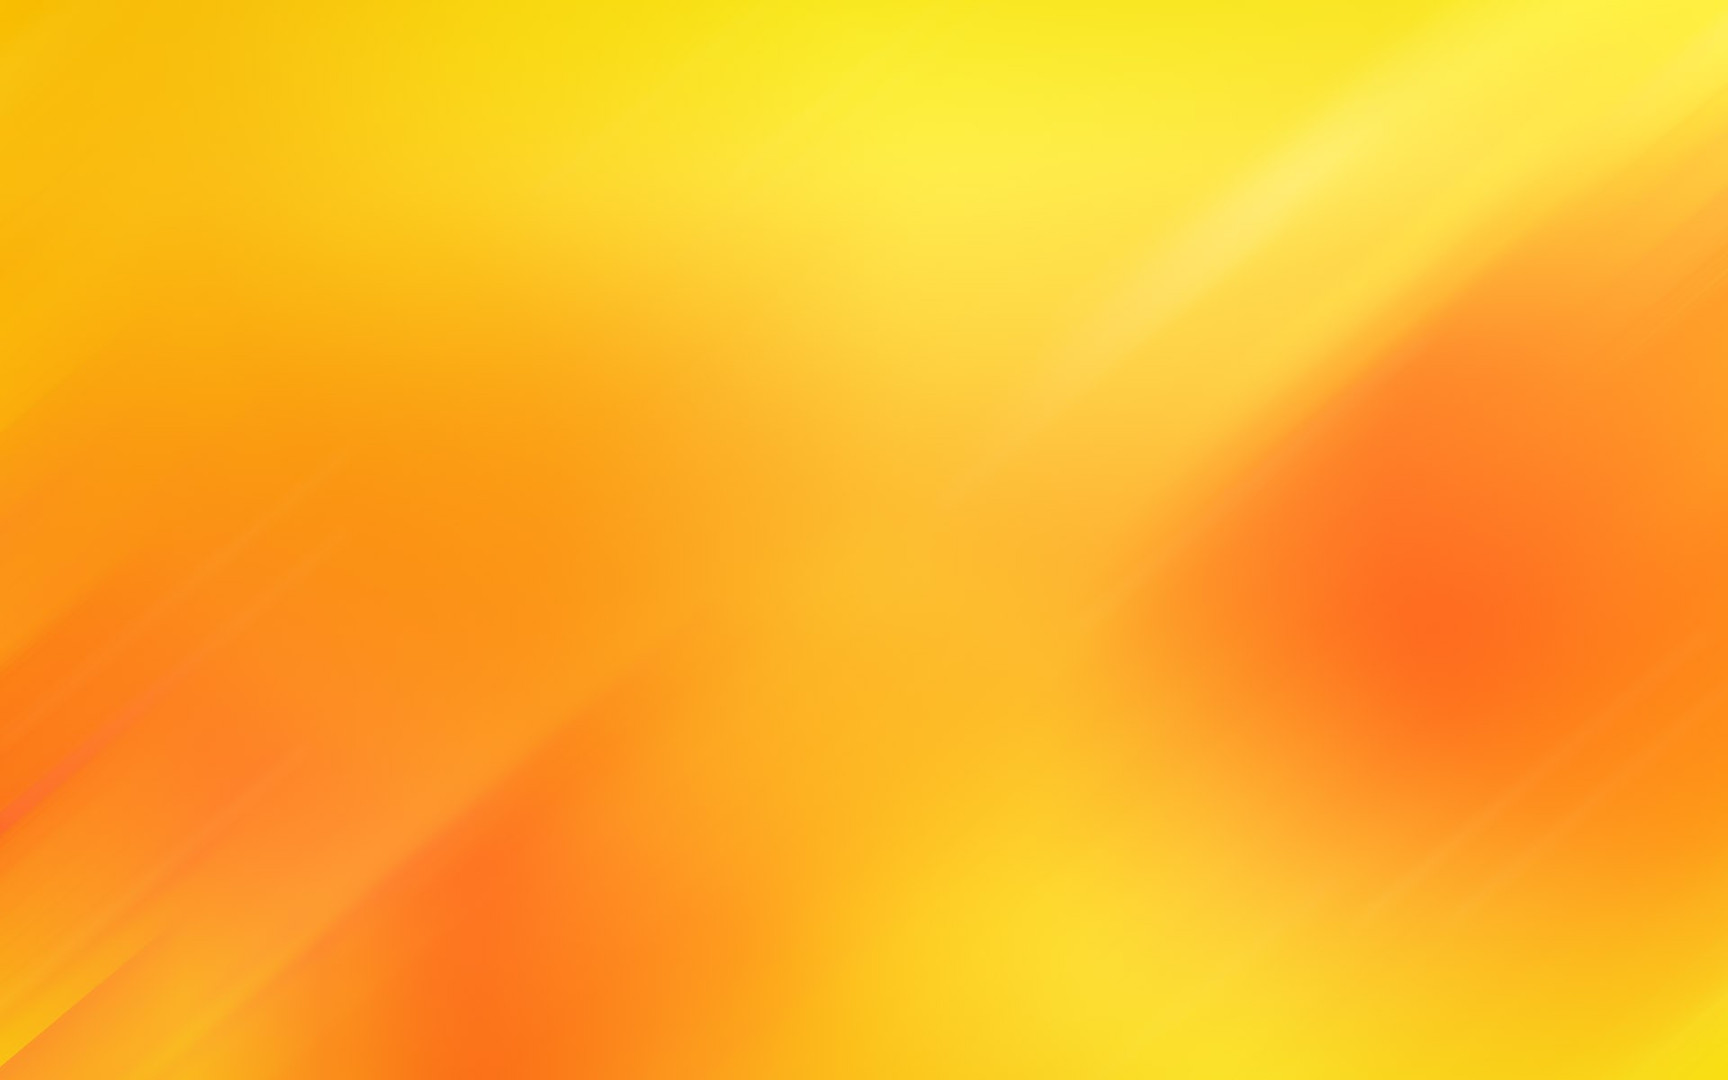 Orange and Yellow Wallpaper - WallpaperSafari